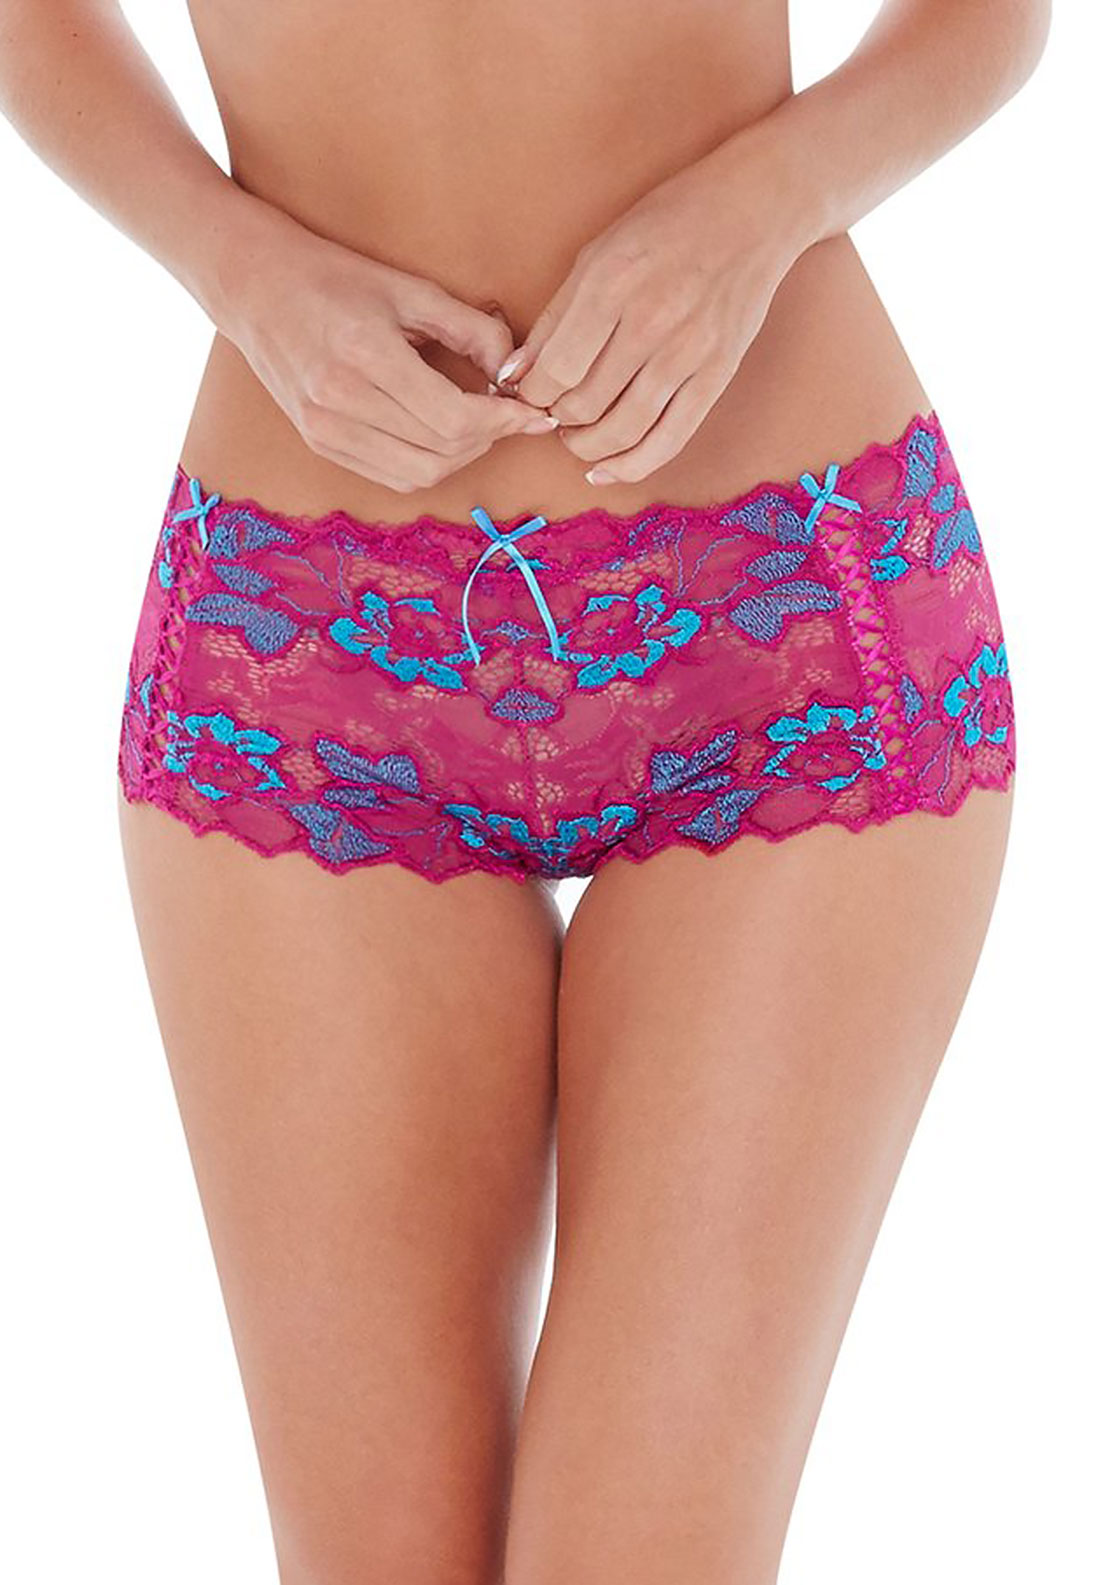 Lepel Fiore Shorty Brief, Fuschia Blue